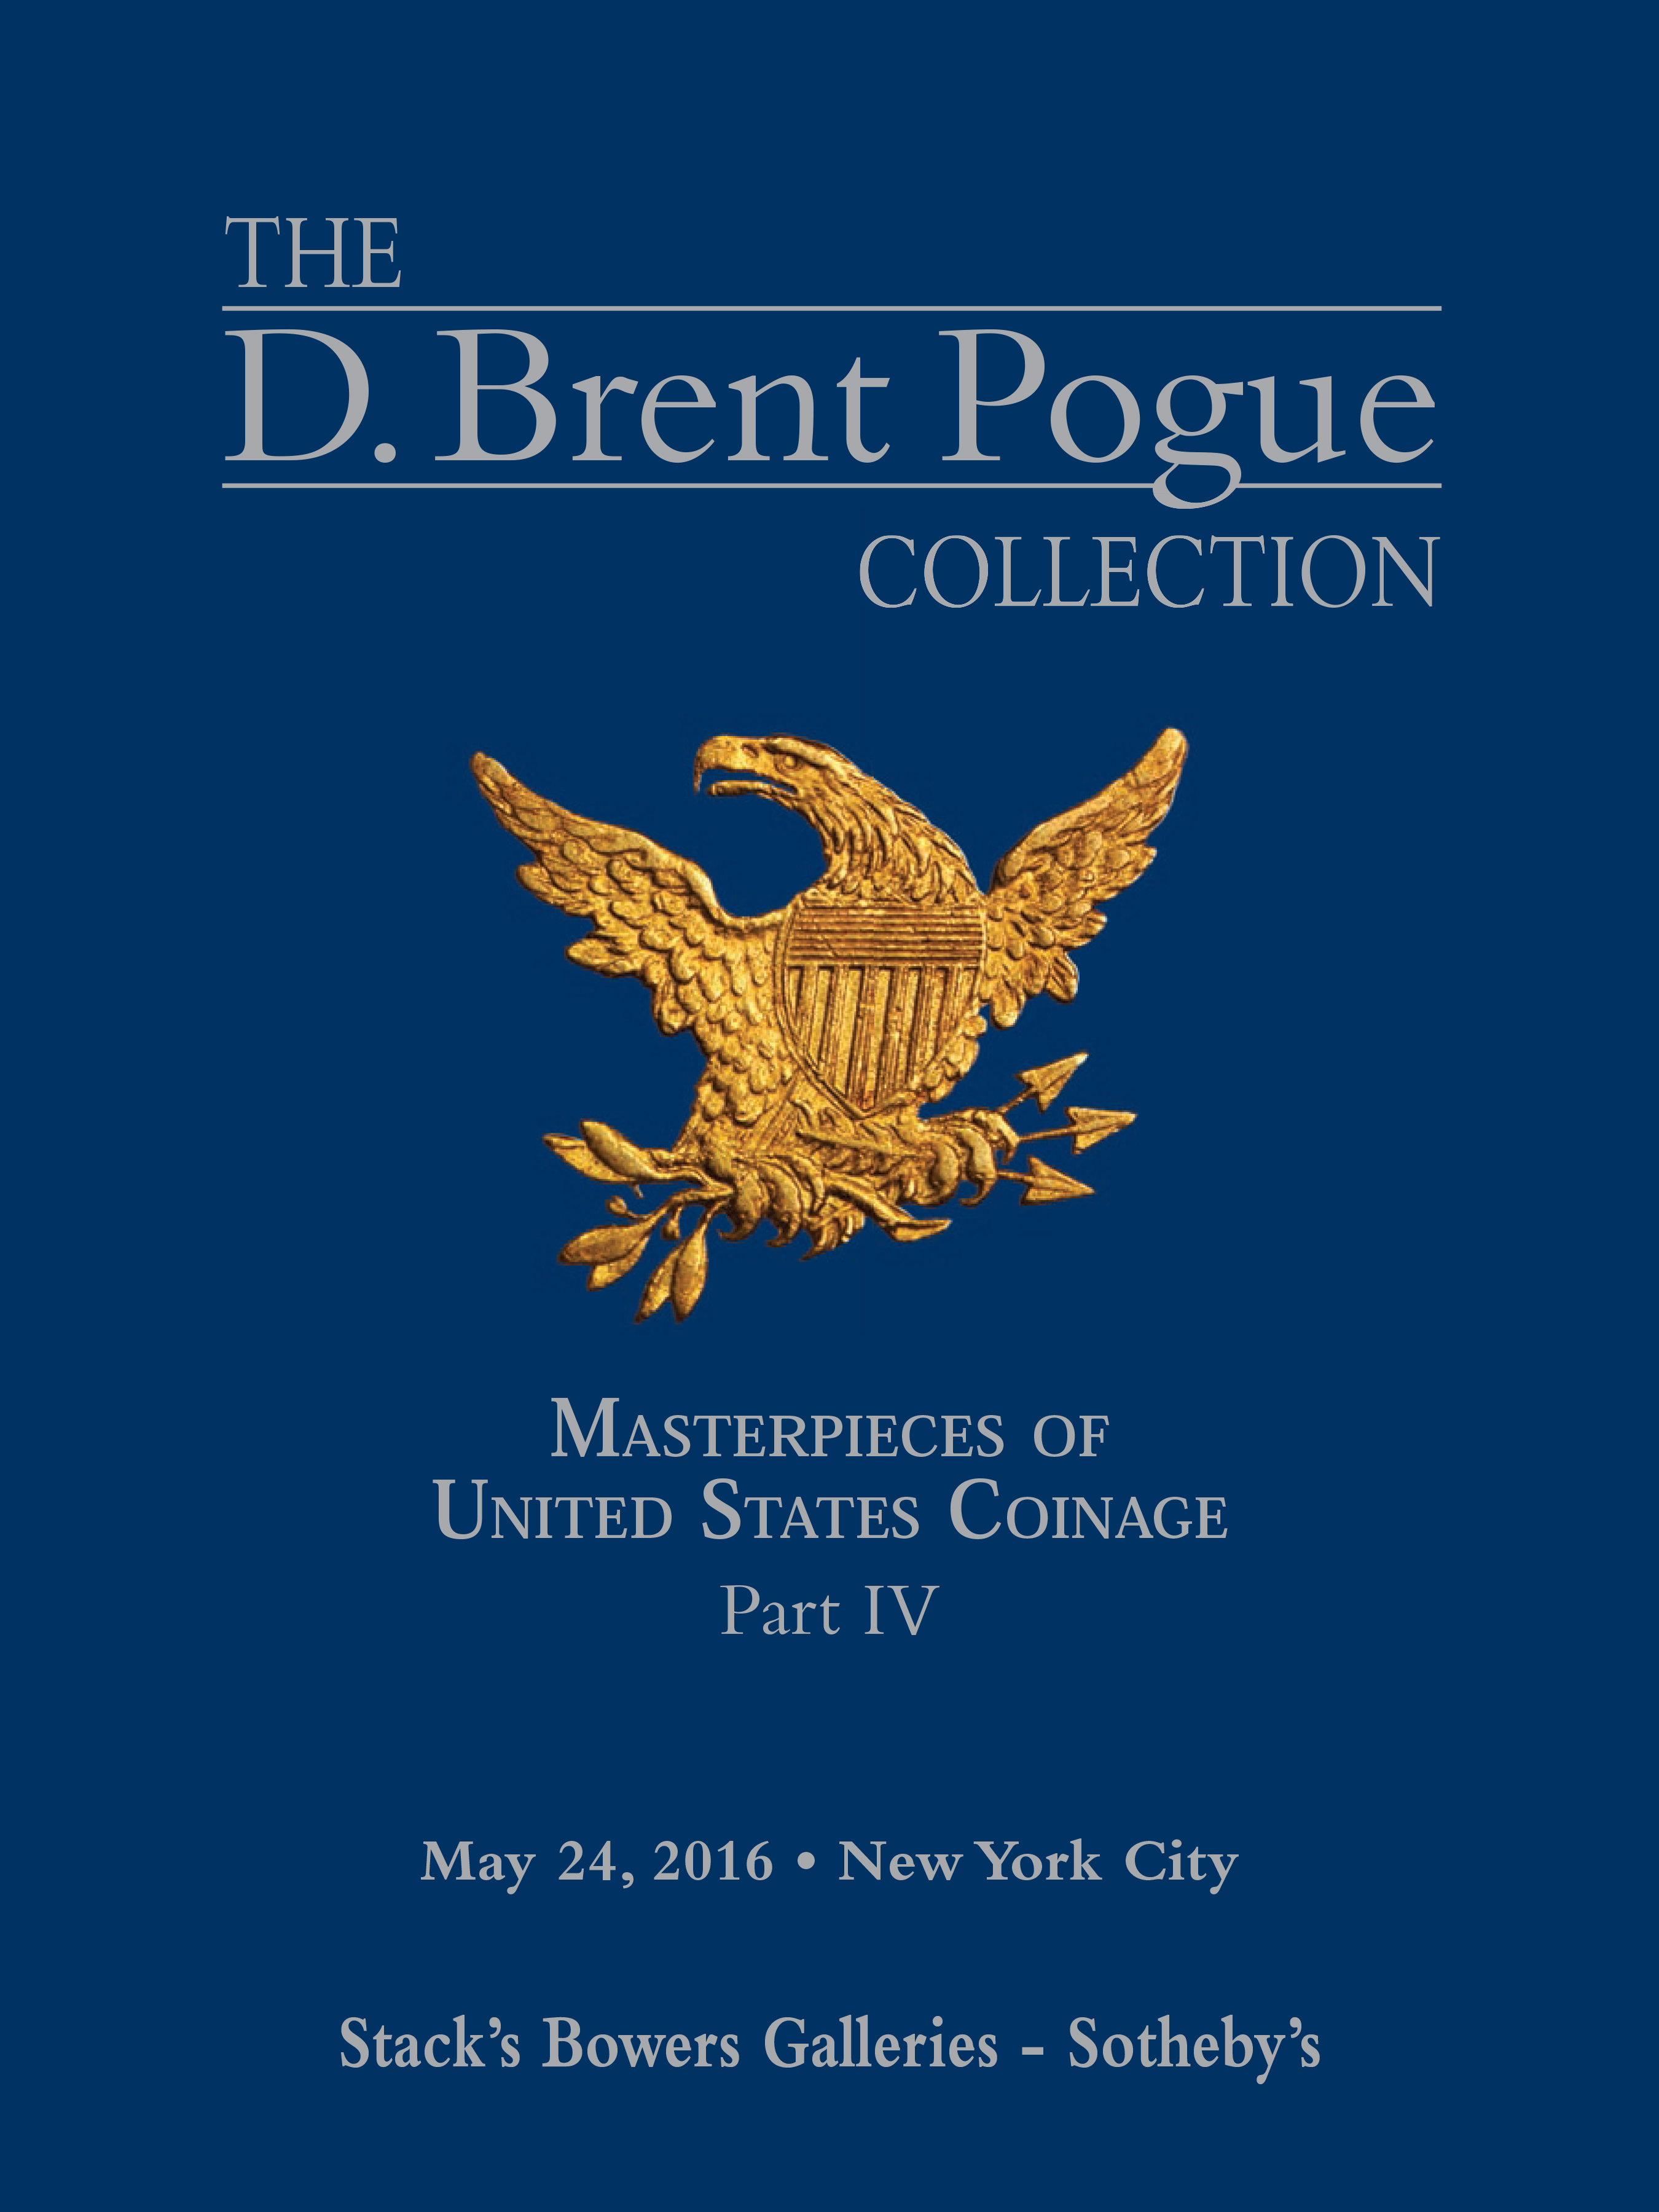 The D. Brent Pogue Collection, Masterpieces of United States Coinage, Part IV